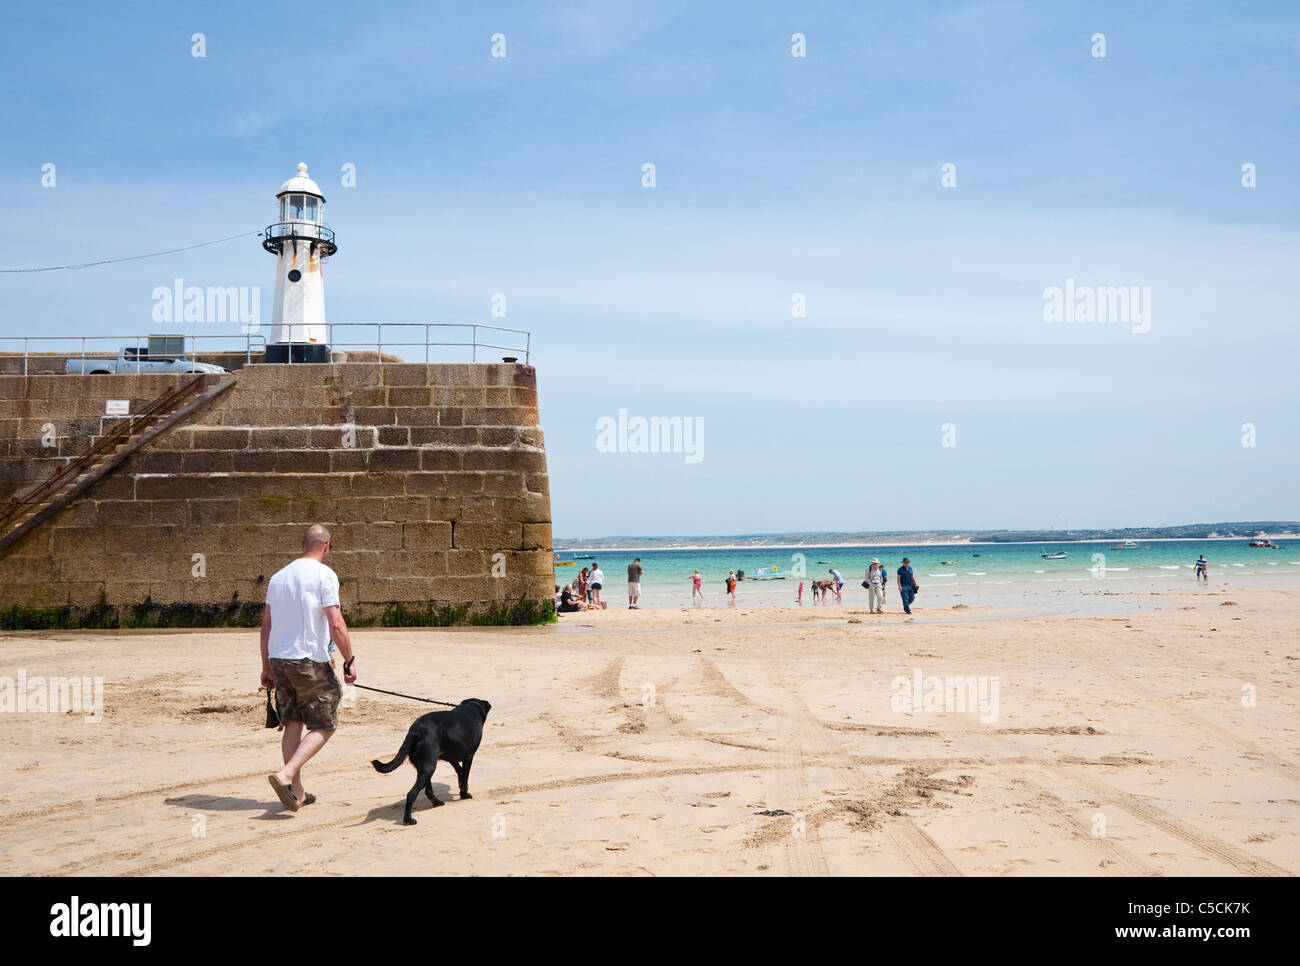 Dog walker, with black labrador - St Ives harbour beach at low tide, with Smeaton Pier / lighthouse as a backdrop. - Stock Image